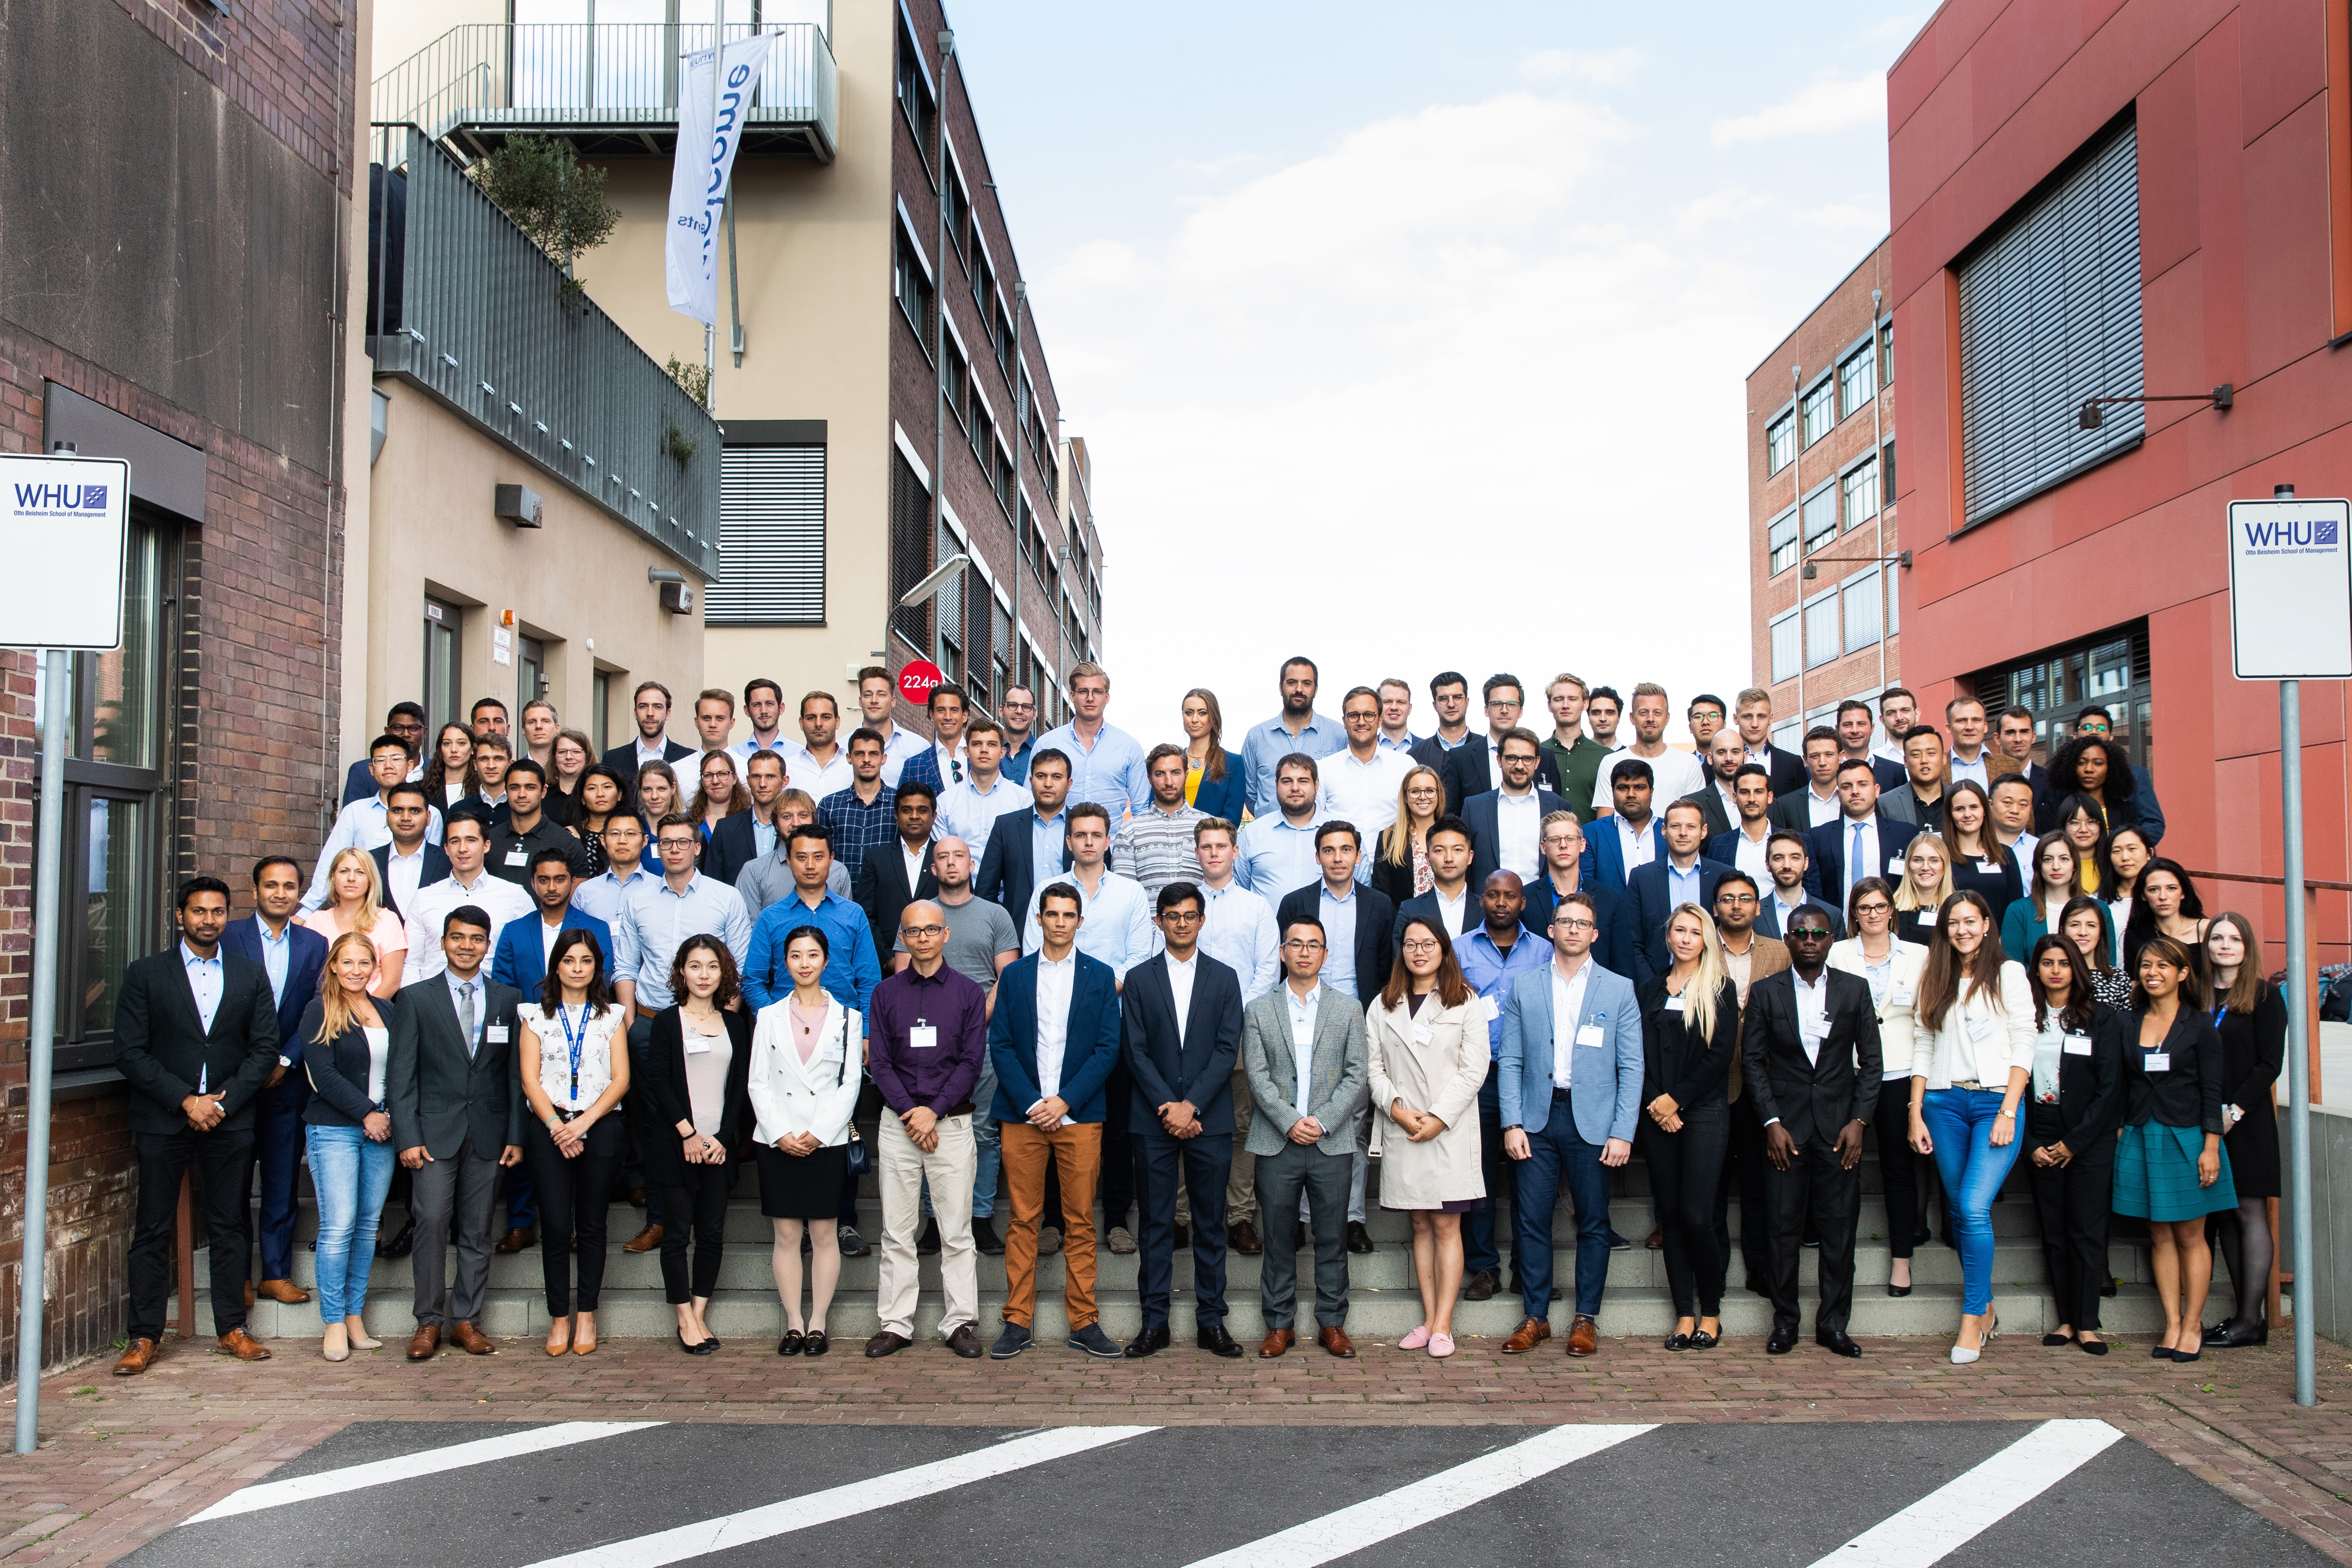 MBA Students group picture